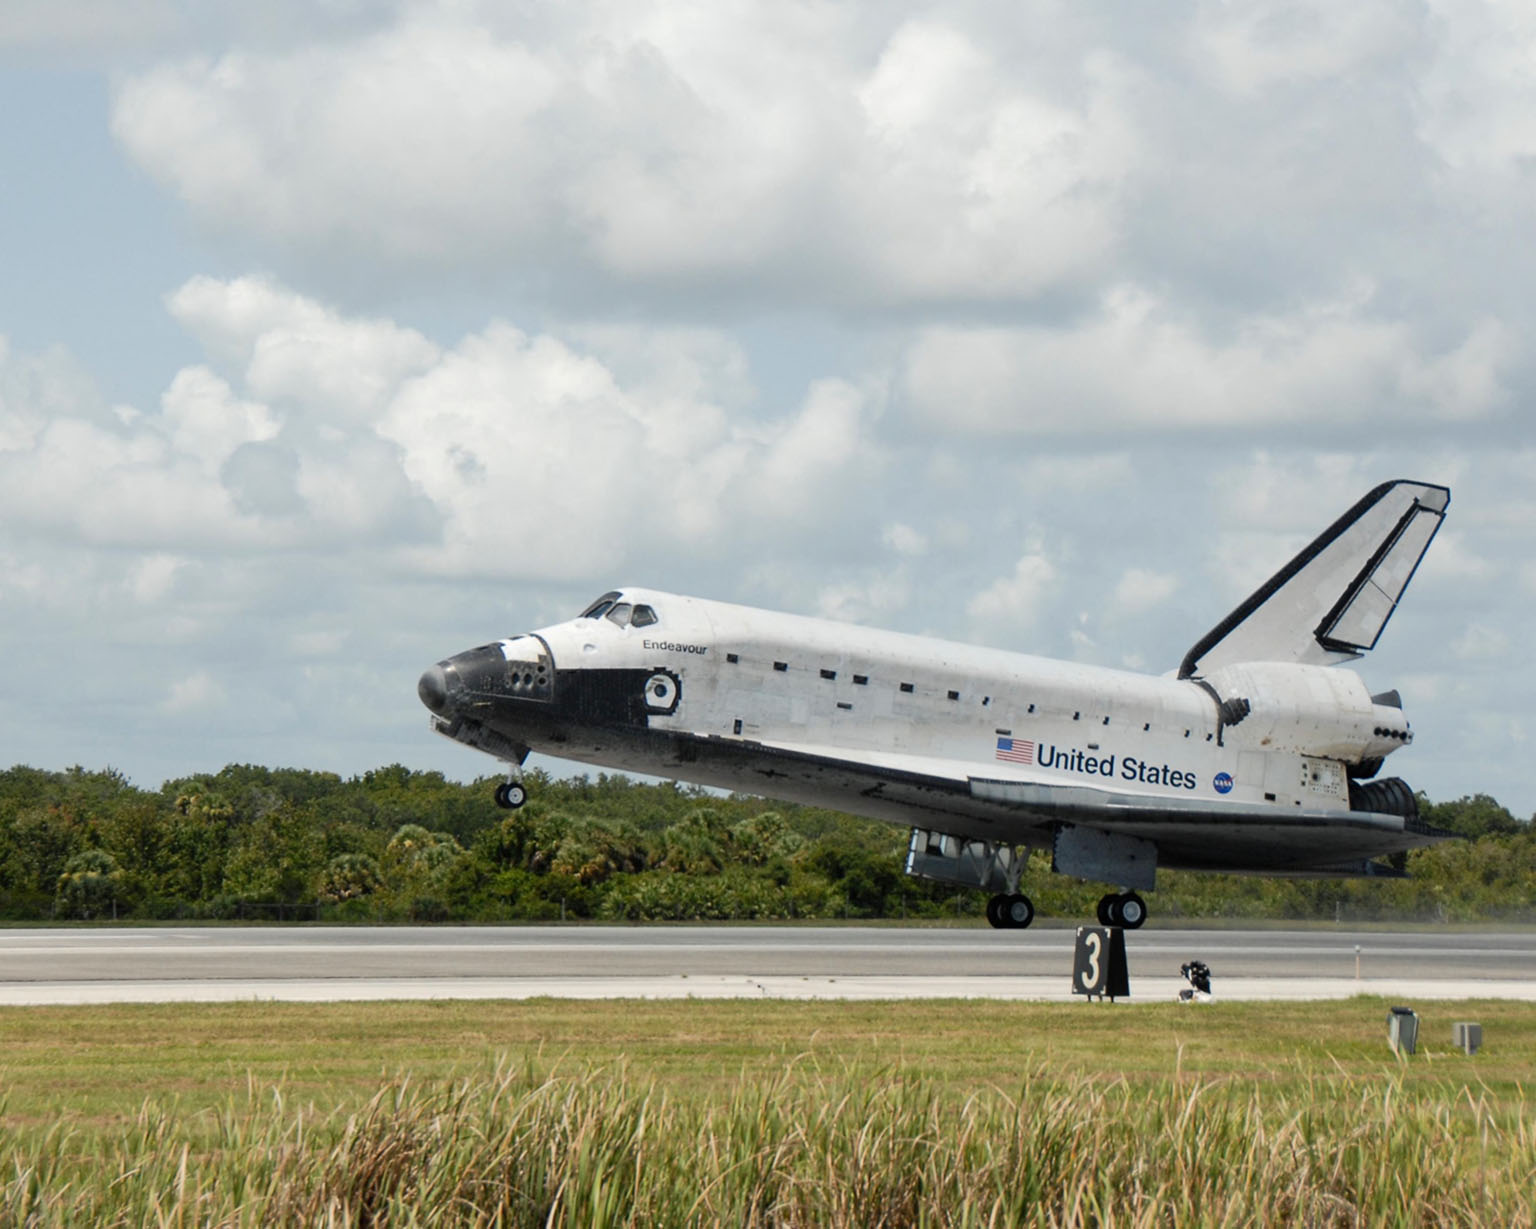 KENNEDY SPACE CENTER, FLA. -- Endeavour touches down on runway 15 at NASA's Kennedy Space Center. The Space Shuttle Endeavour crew, led by Commander Scott Kelly, completes a 13-day mission to the International Space Station. The STS-118 mission began Aug. 8 and installed a new gyroscope, an external spare parts platform and another truss segment to the expanding station. Endeavour's main gear touched down at 12:32:16 p.m. EDT. Nose gear touchdown was at 12:32:29 p.m. and wheel stop was at 12:33:20 p.m. Endeavour traveled nearly 5.3 million miles, landing on orbit 201. STS-118 was the 119th space shuttle flight, the 22nd flight to the station, the 20th flight for Endeavour and the second of four missions planned for 2007. This was the 65th landing of an orbiter at Kennedy. Photo credit: NASA/Kim Shiflett